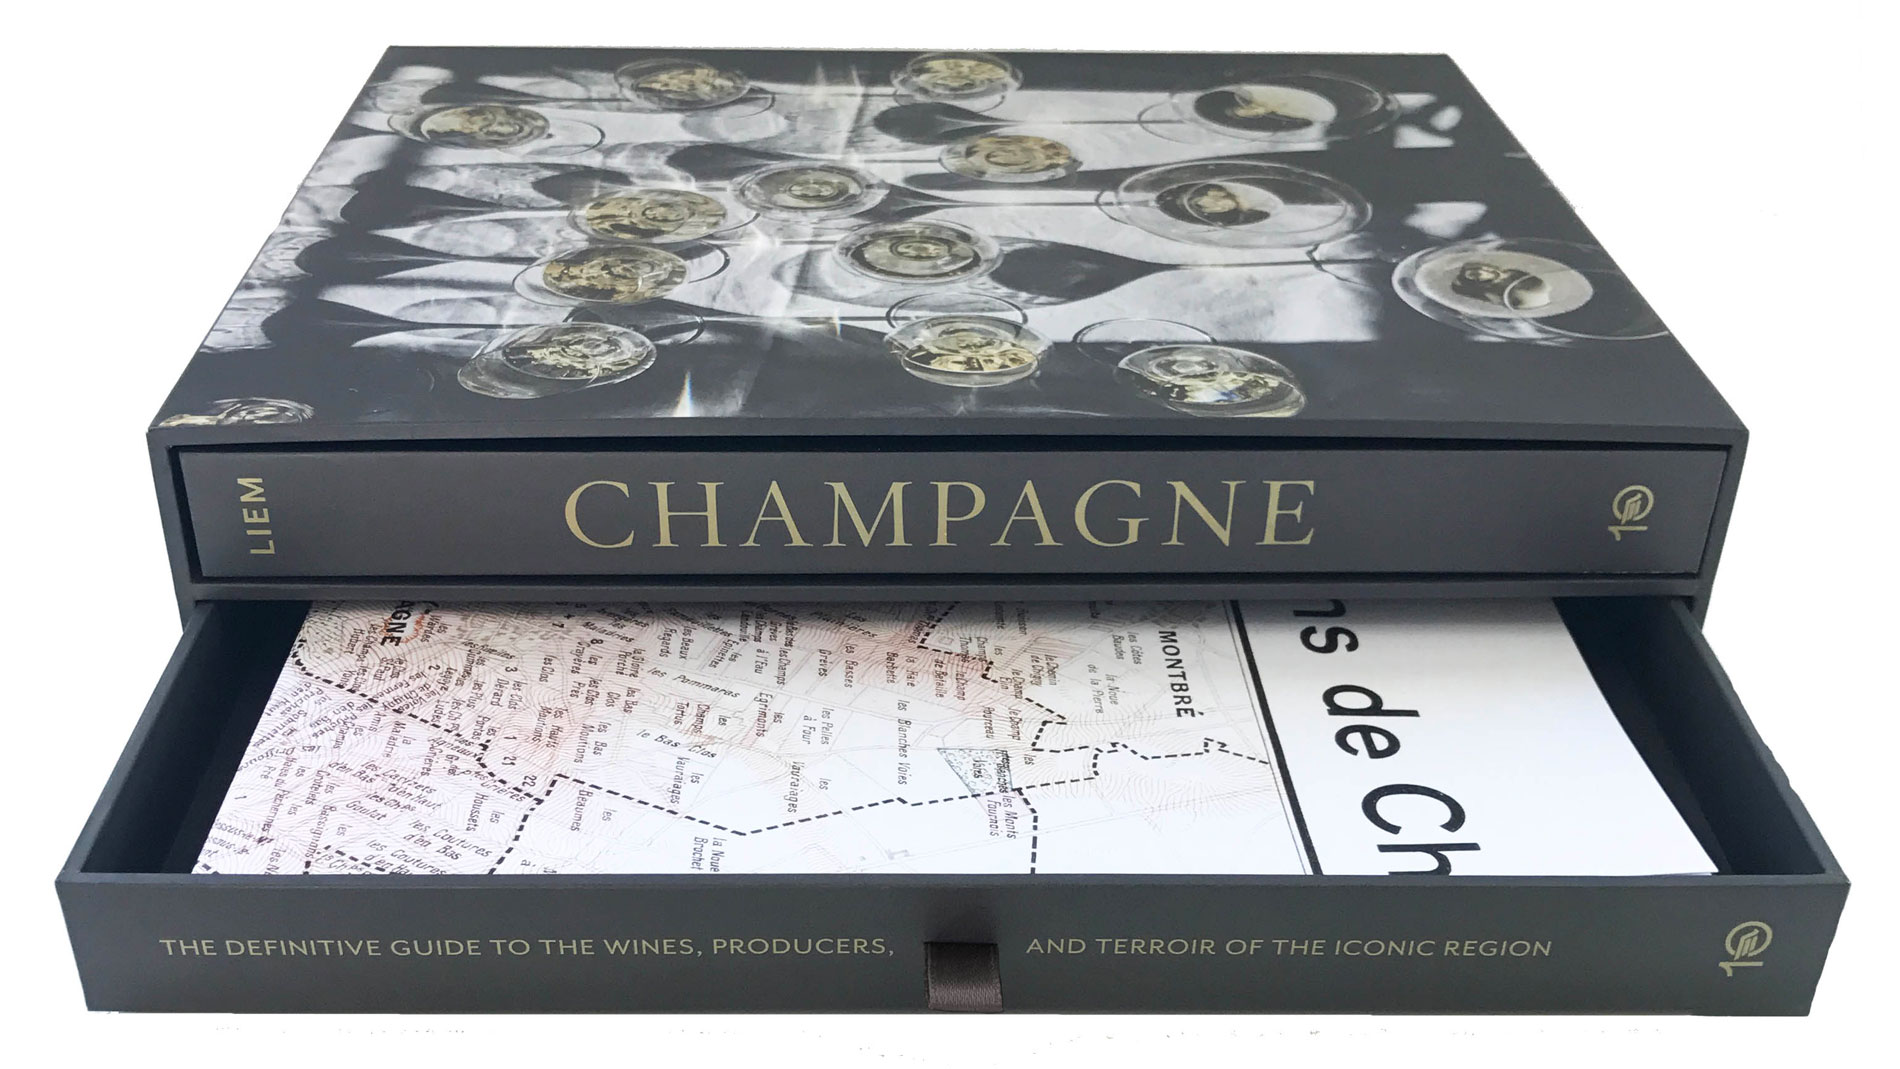 A 100-Year Timeline of Single-Estate Champagnes